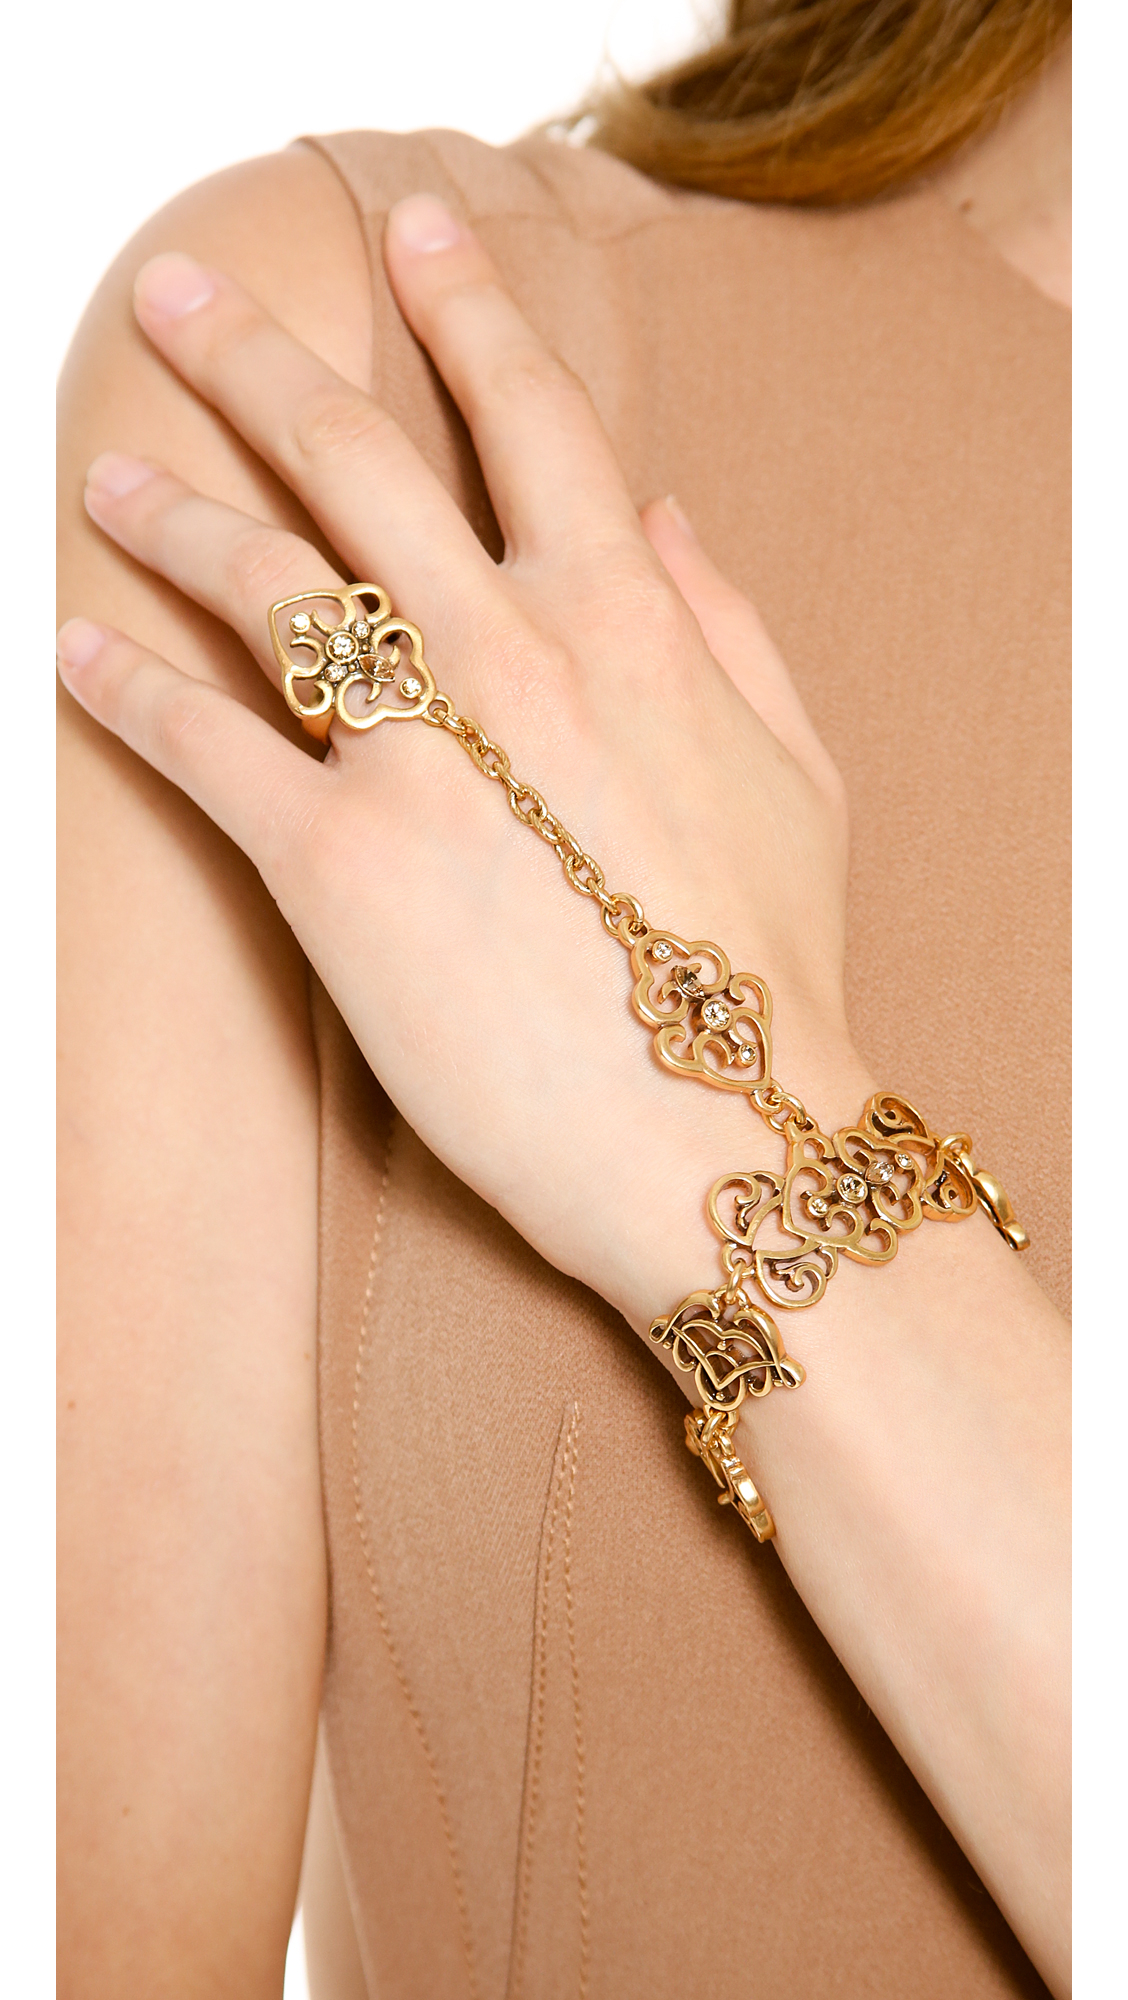 Gold Bracelet With Ring